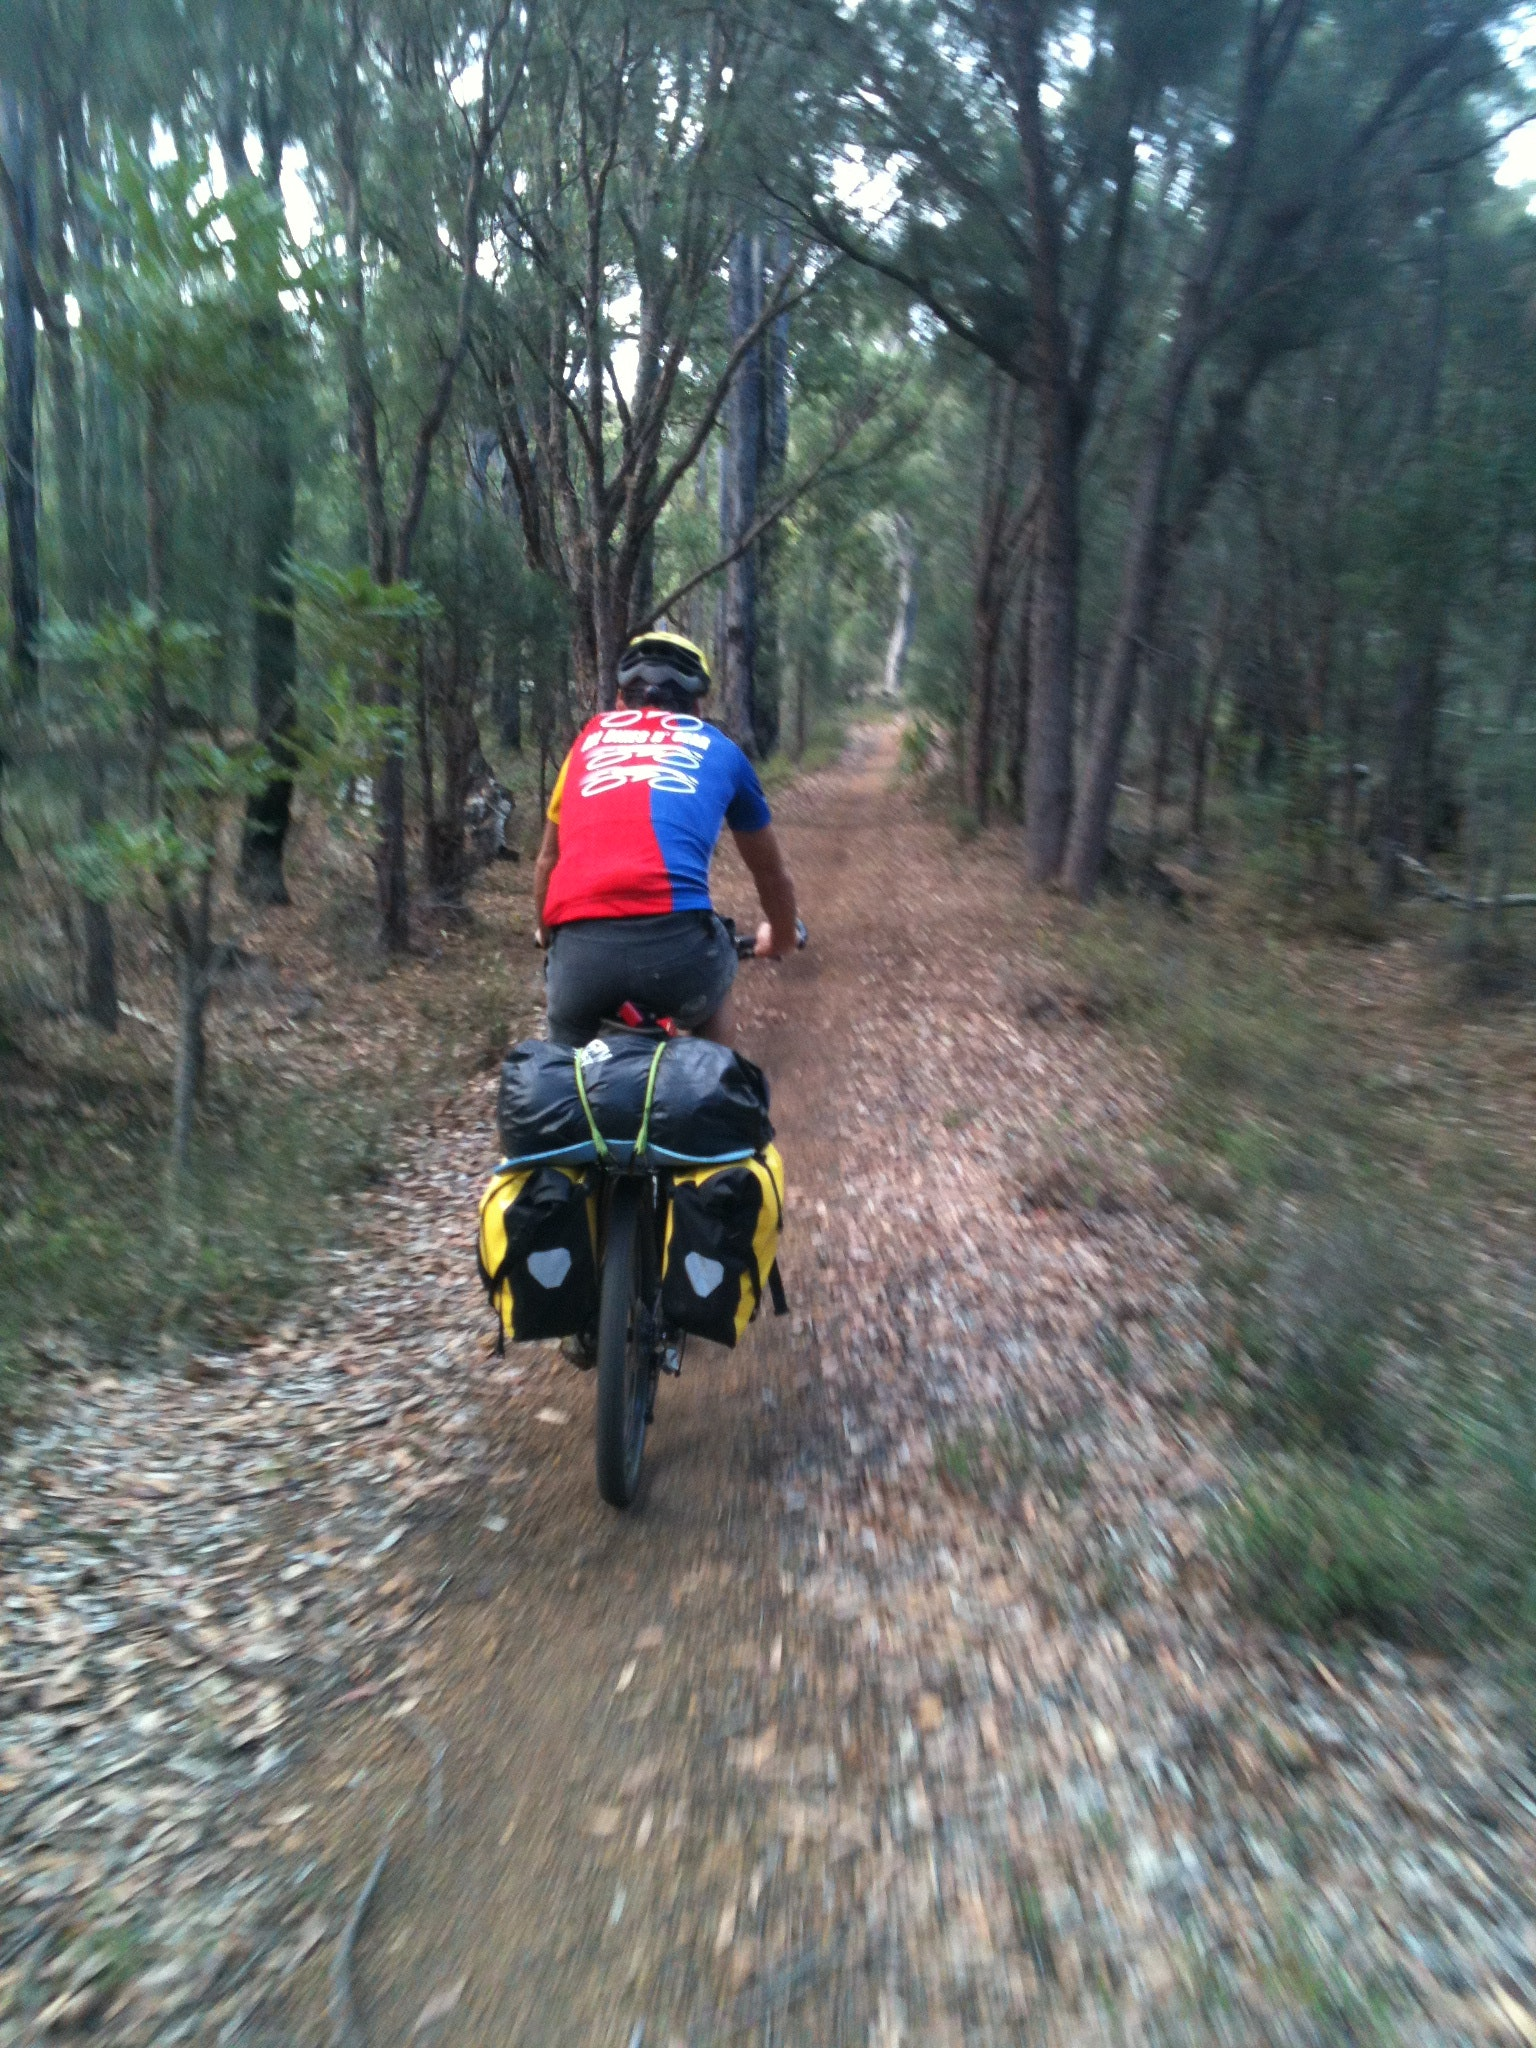 Riding the form near Balmoral